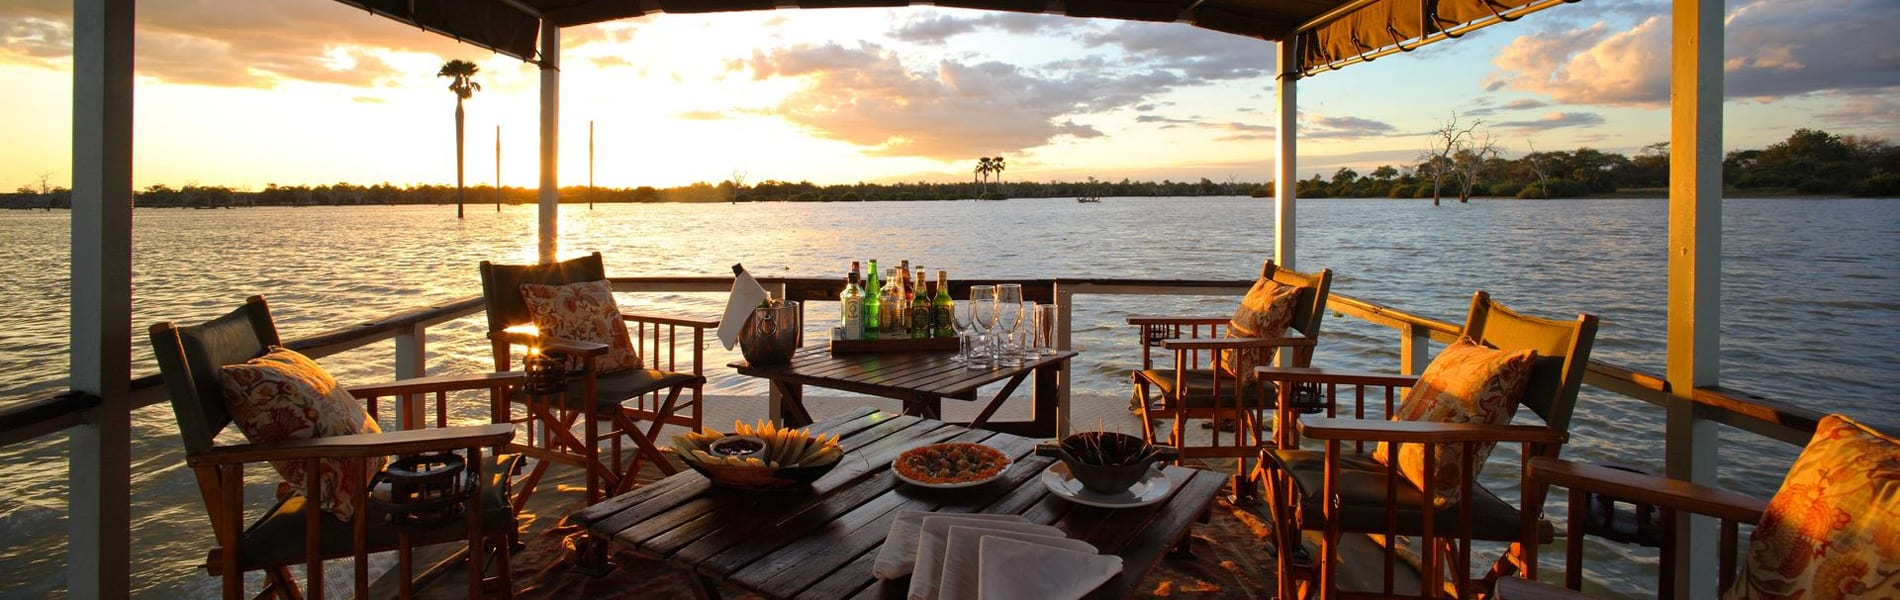 Siwandu Camp boot sundowner